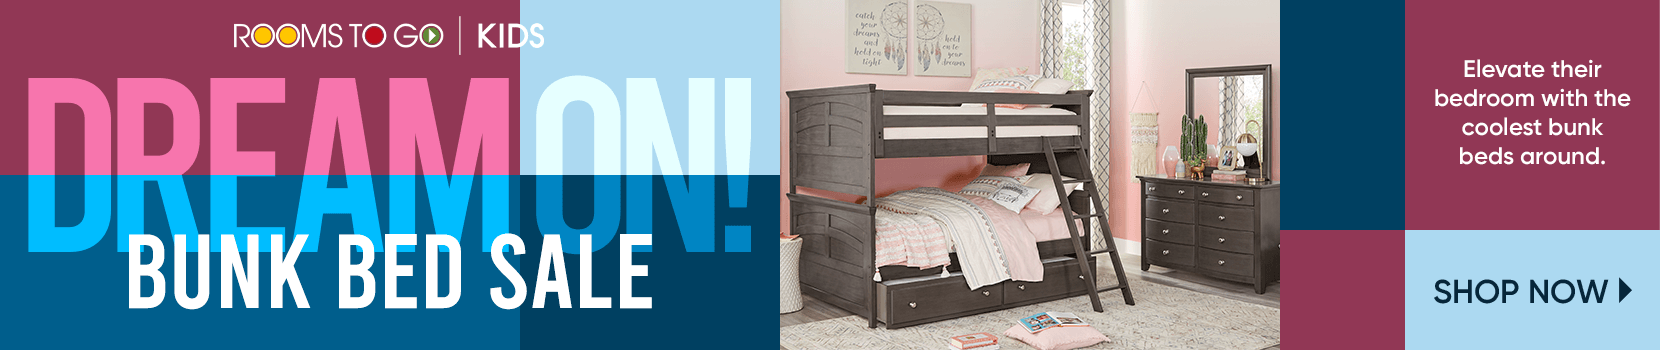 dream on! bunk bed sale. elevate their bedroom with the coolest bunk beds around. shop now